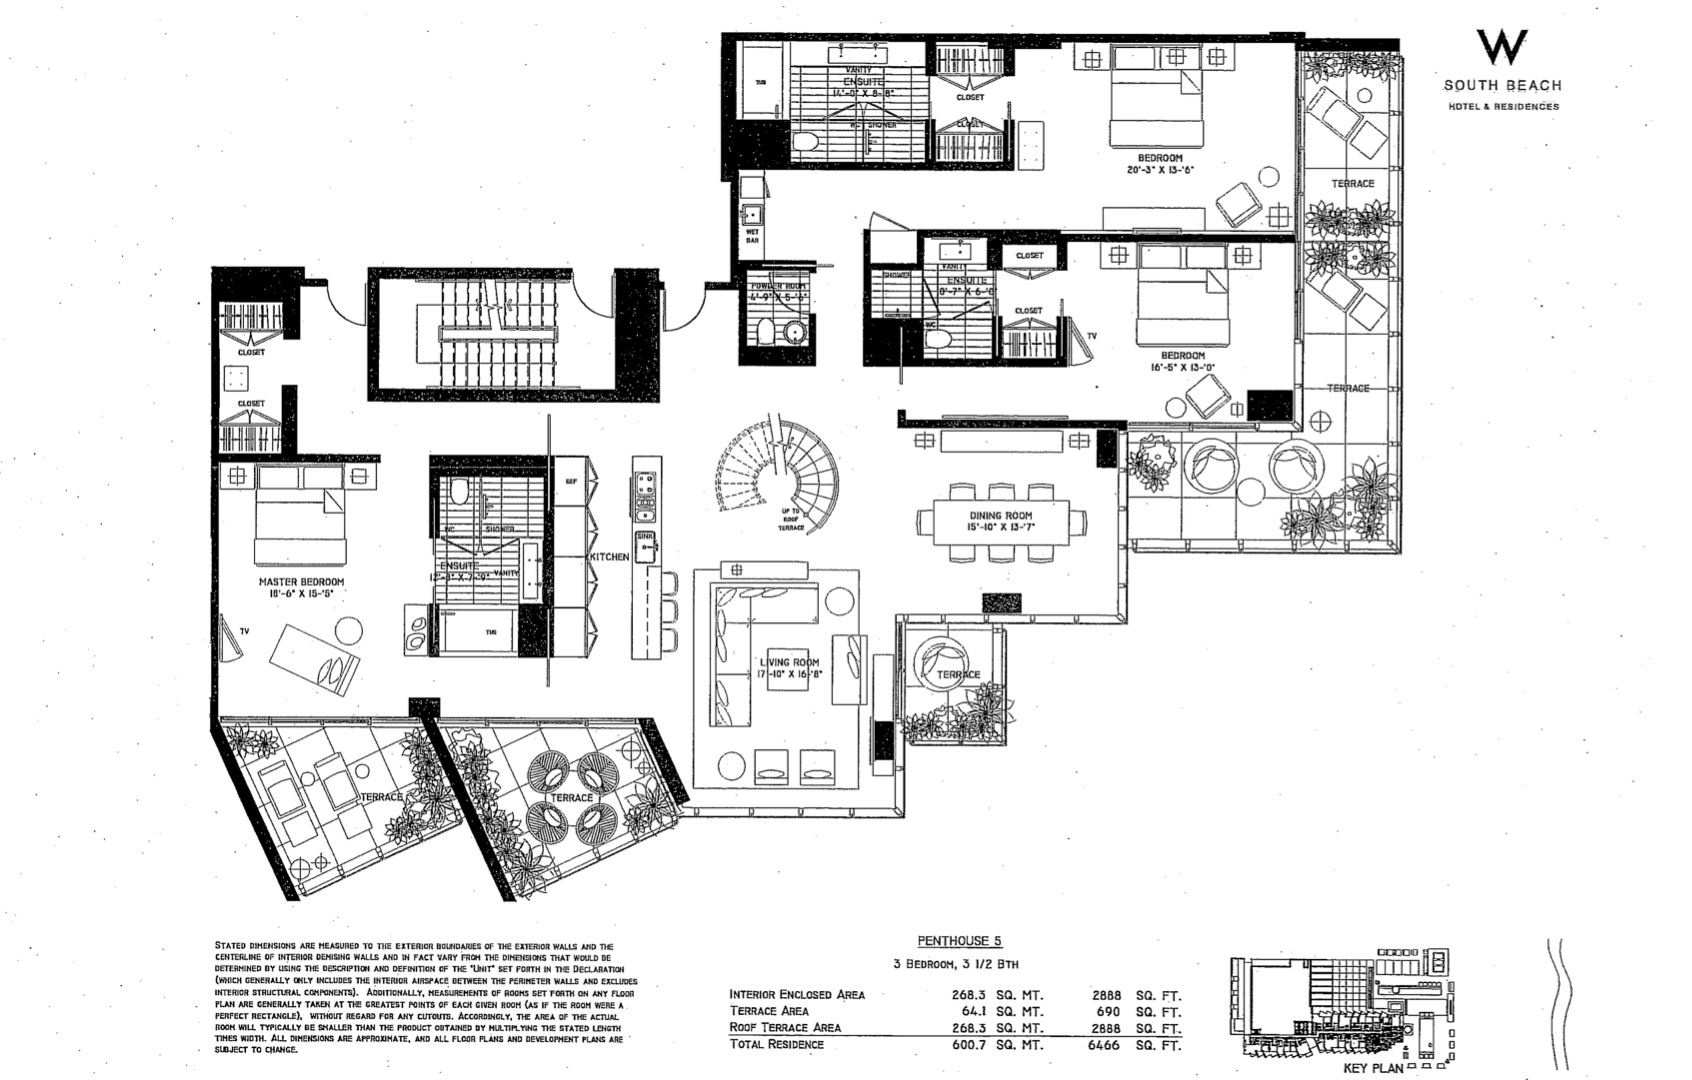 Floor plan image W South Beach Penthouse 5 - 2/2/1  - 6466 sqft image